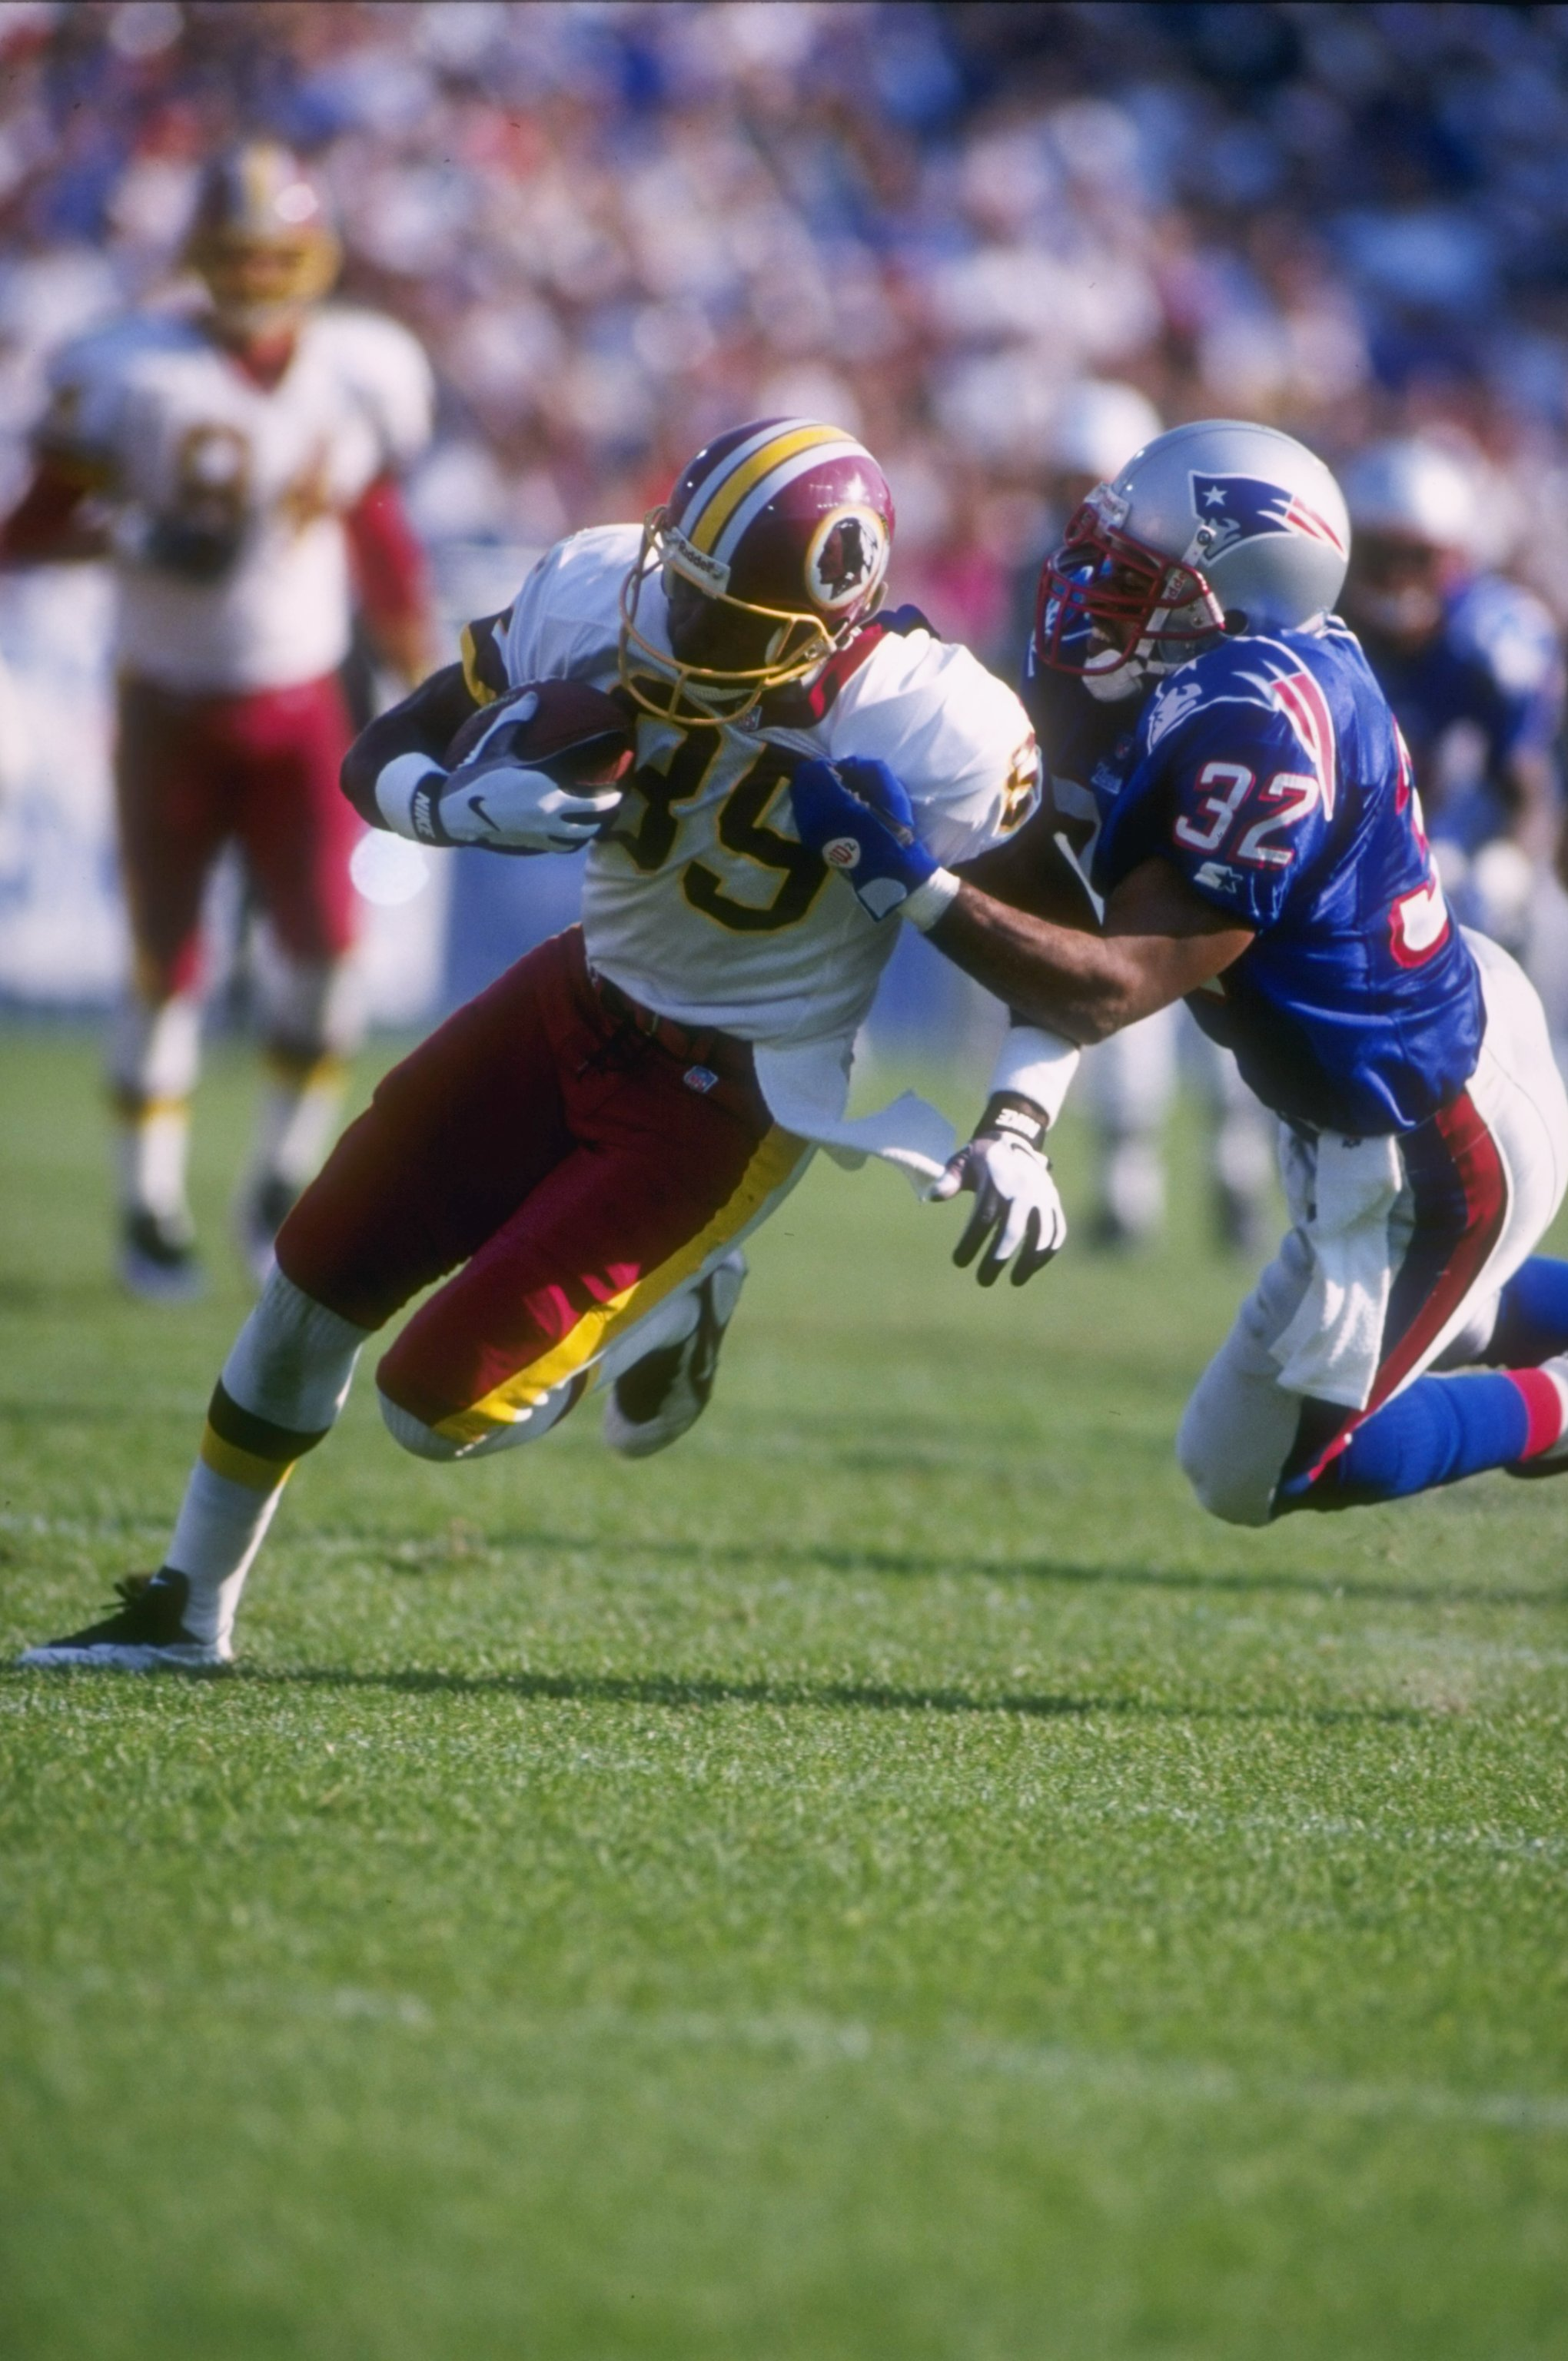 13 Oct 1996: Wide receiver Henry Ellard #89 of the Washington Redskins hangs onto the football as he attempts to run through the diving grasp of defensive back Willie Clay #32 of the New England Patriots following a recetpion in the Redskins 27-22 victory